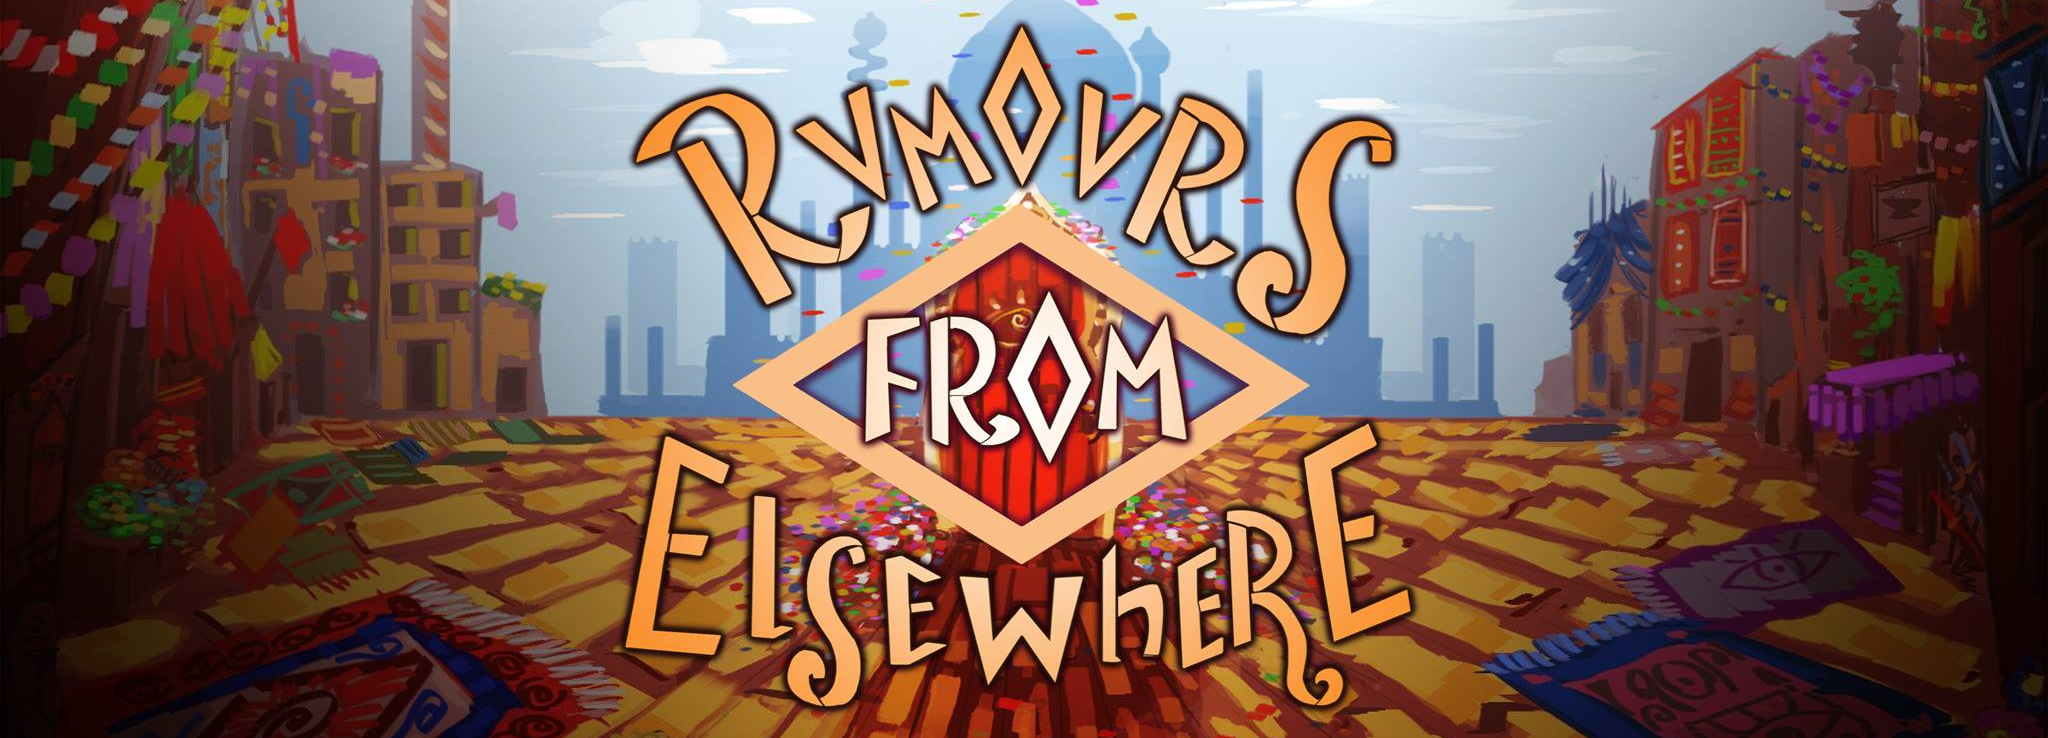 Rumours From Elsewhere Demo